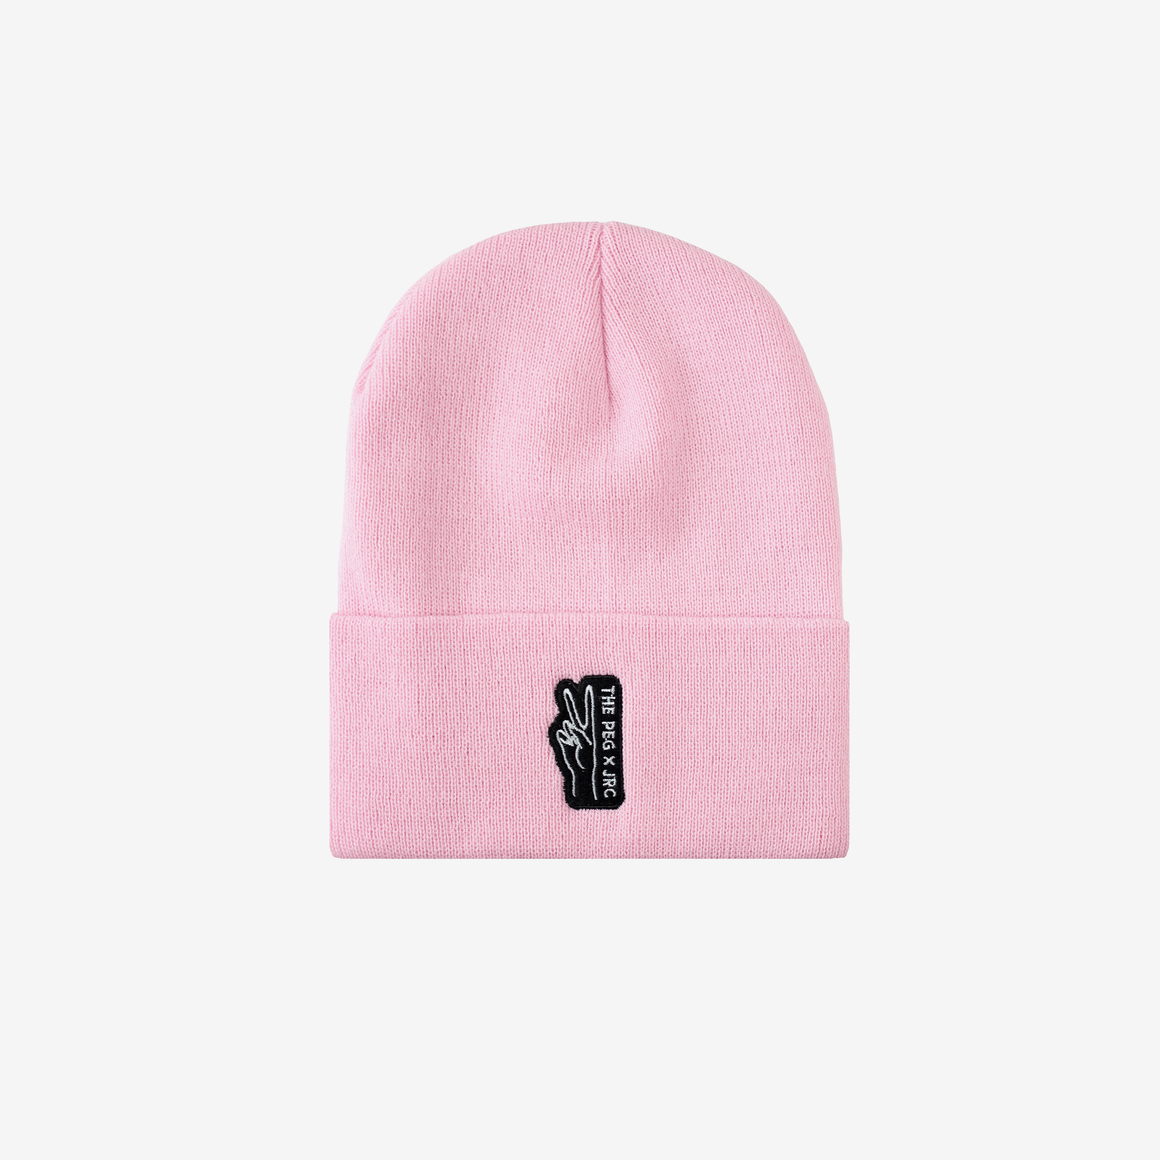 The Peg Authentic x Jenna Rae Cakes Classic Cuffed Toque (Pink)